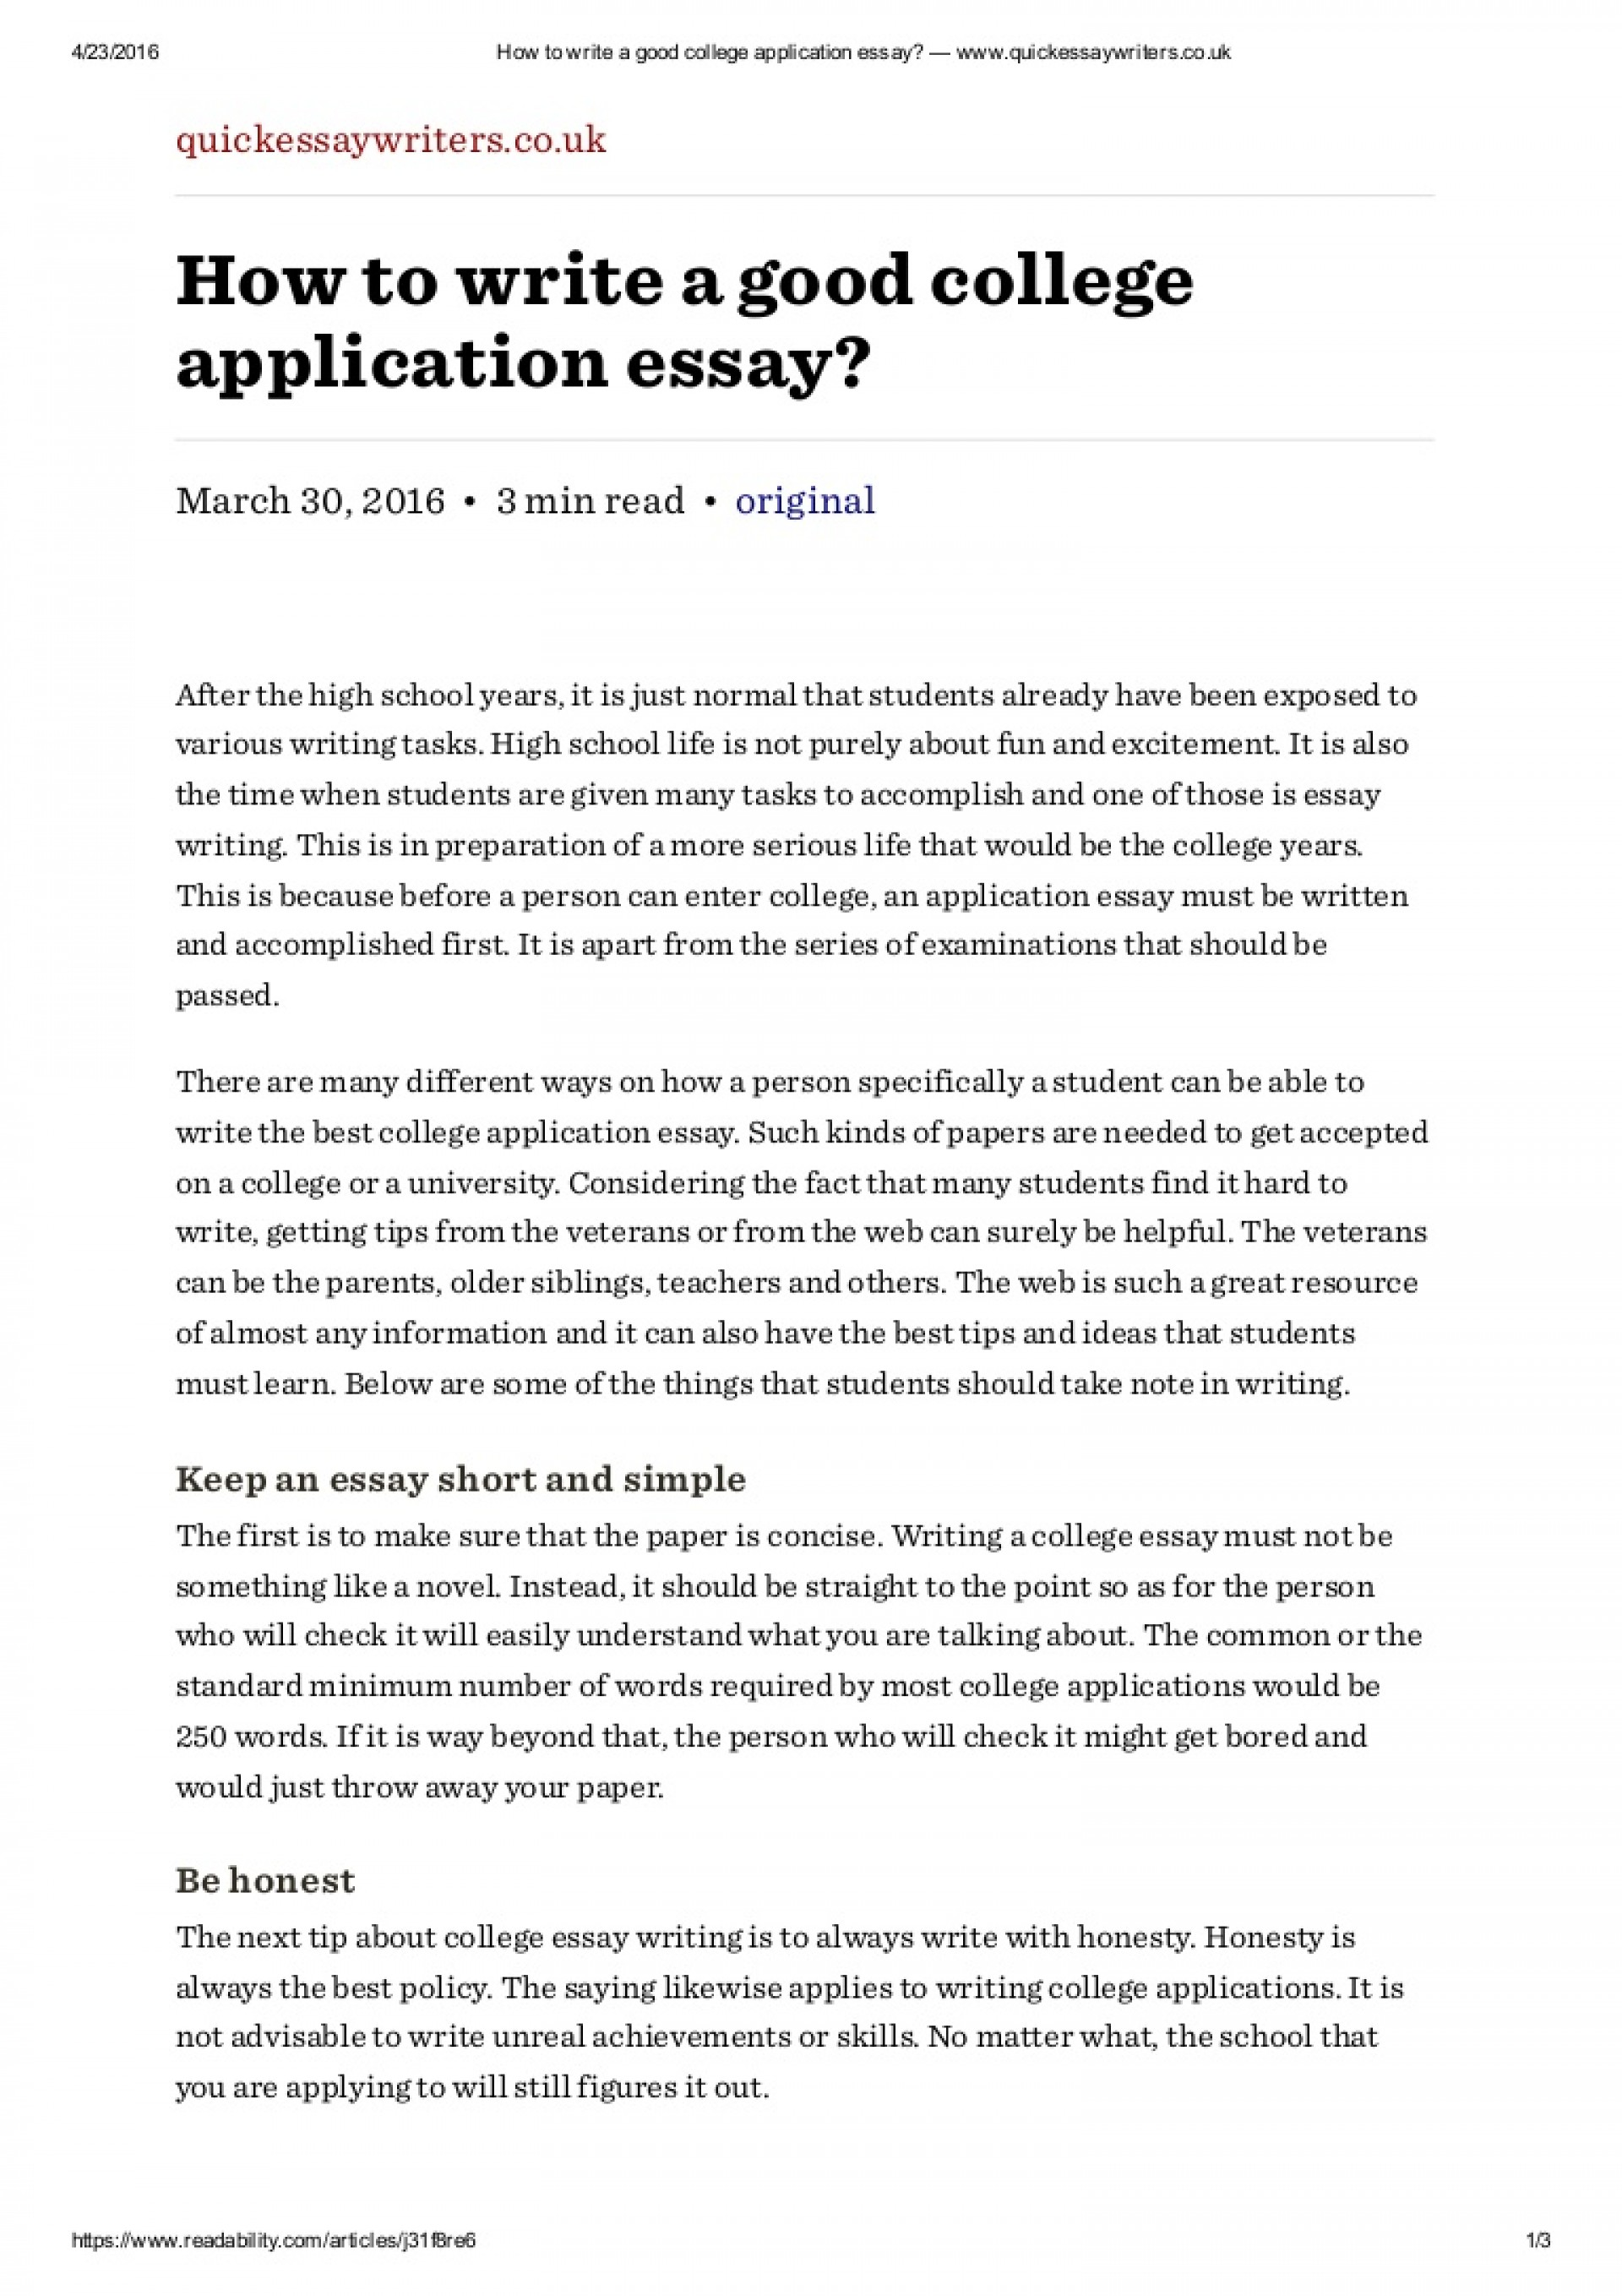 009 Howtowriteagoodcollegeapplicationessaywww Thumbnail Essay Example Writing College Rare A Application How To Write Term Paper Outline Topics On Examples 1920